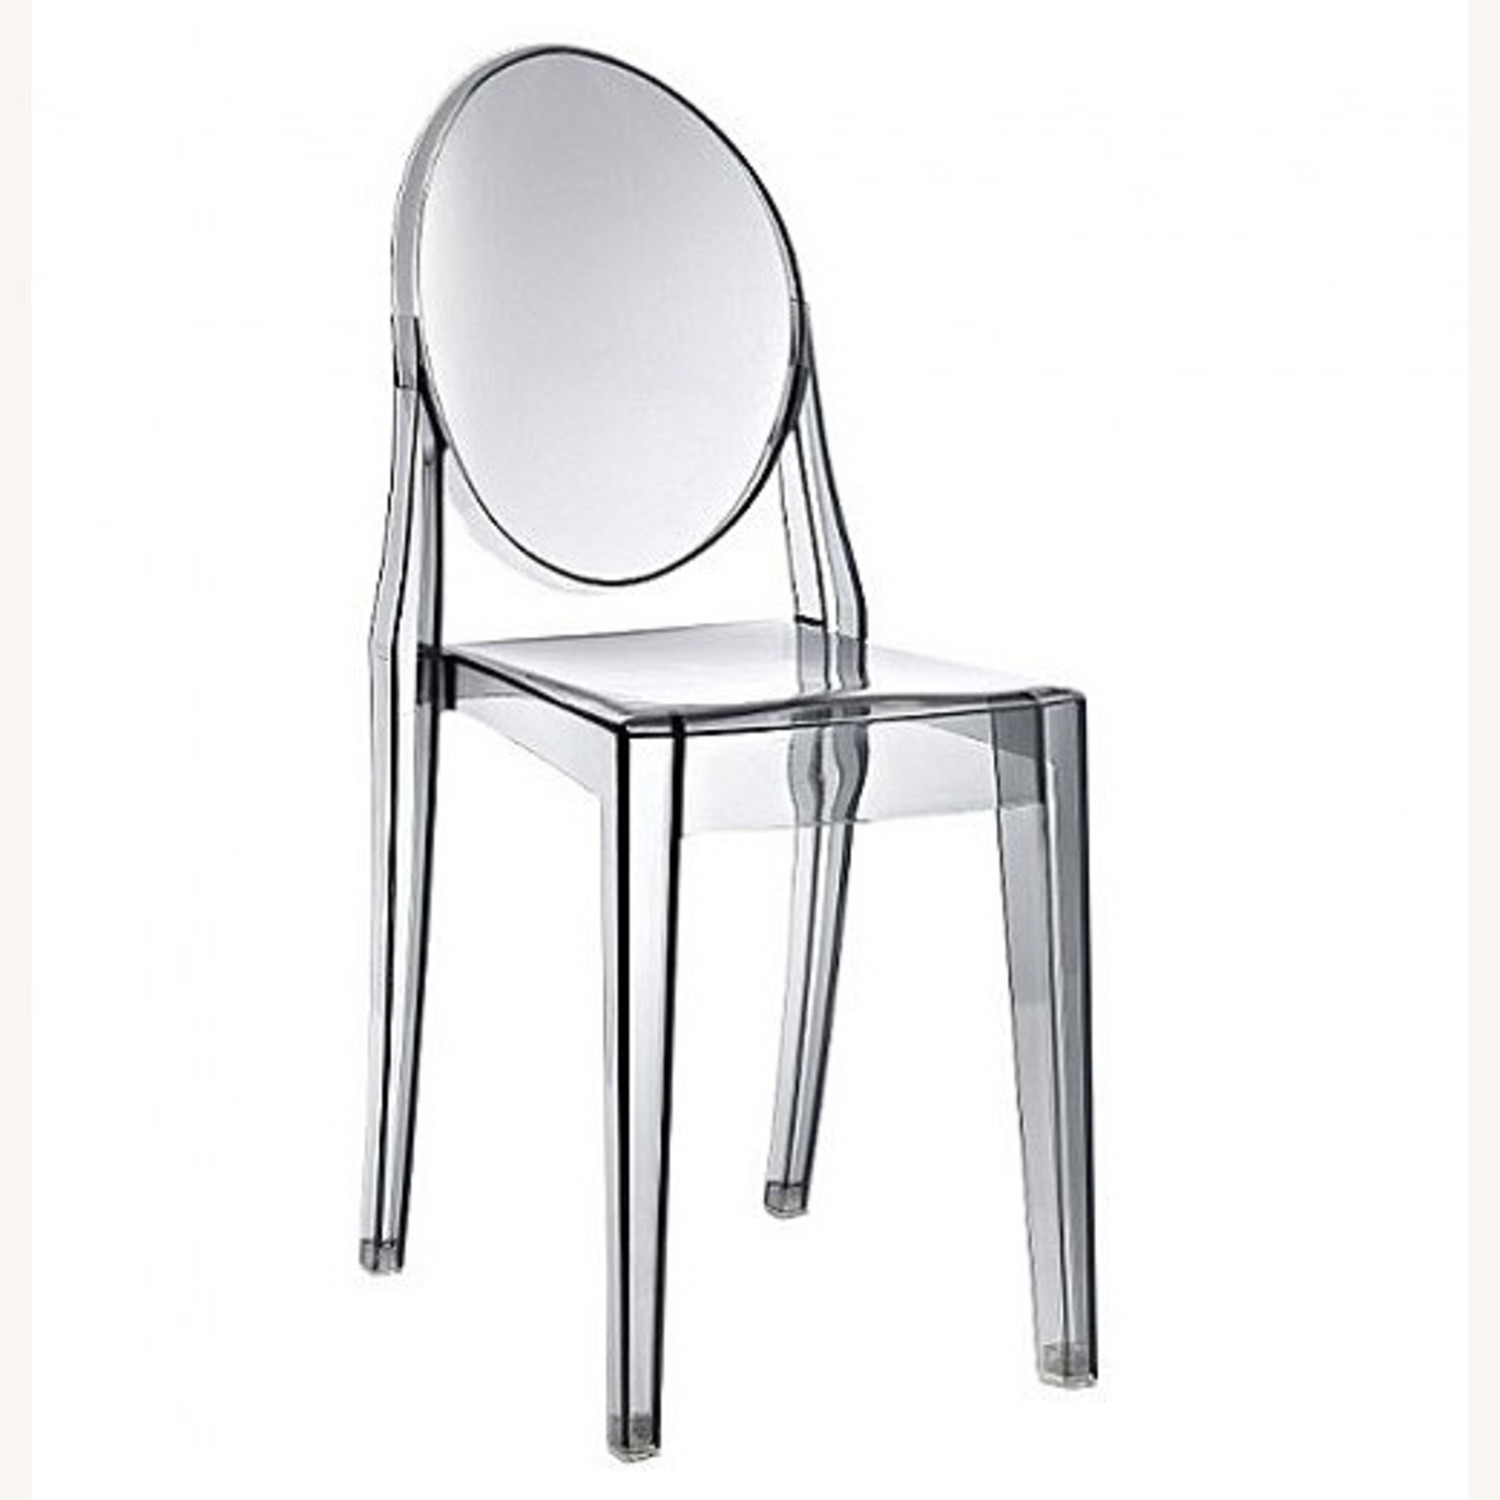 Modway Casper Ghost Dining Chair in Smoke (Set of 4) - image-1